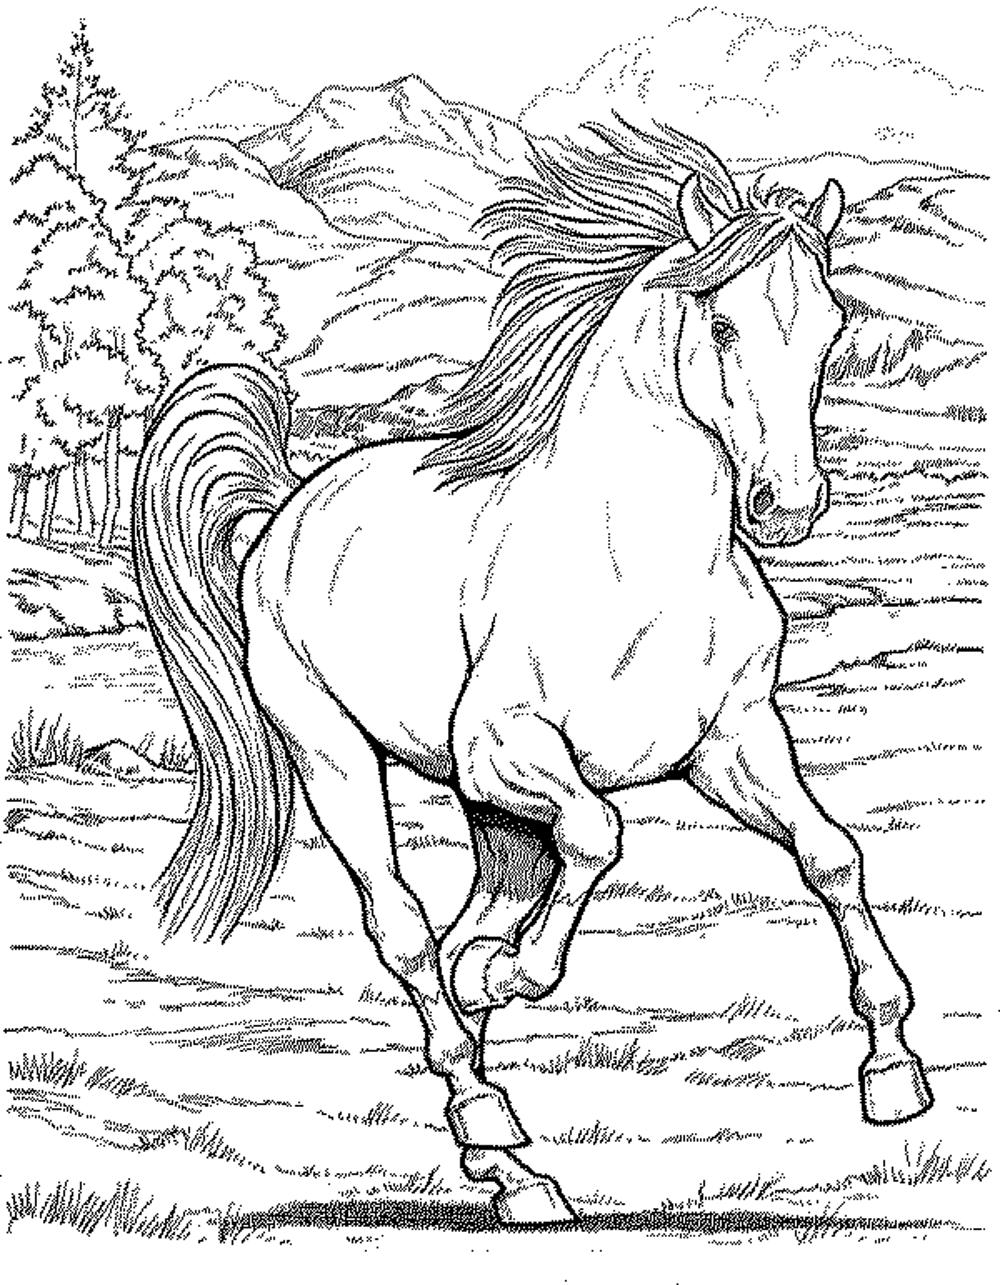 Horse coloring books for kids - Horse Coloring Pages For Kids Printable Kids Colouring Pages Horse Coloring Pages For Kids Printable Kids Colouring Pages